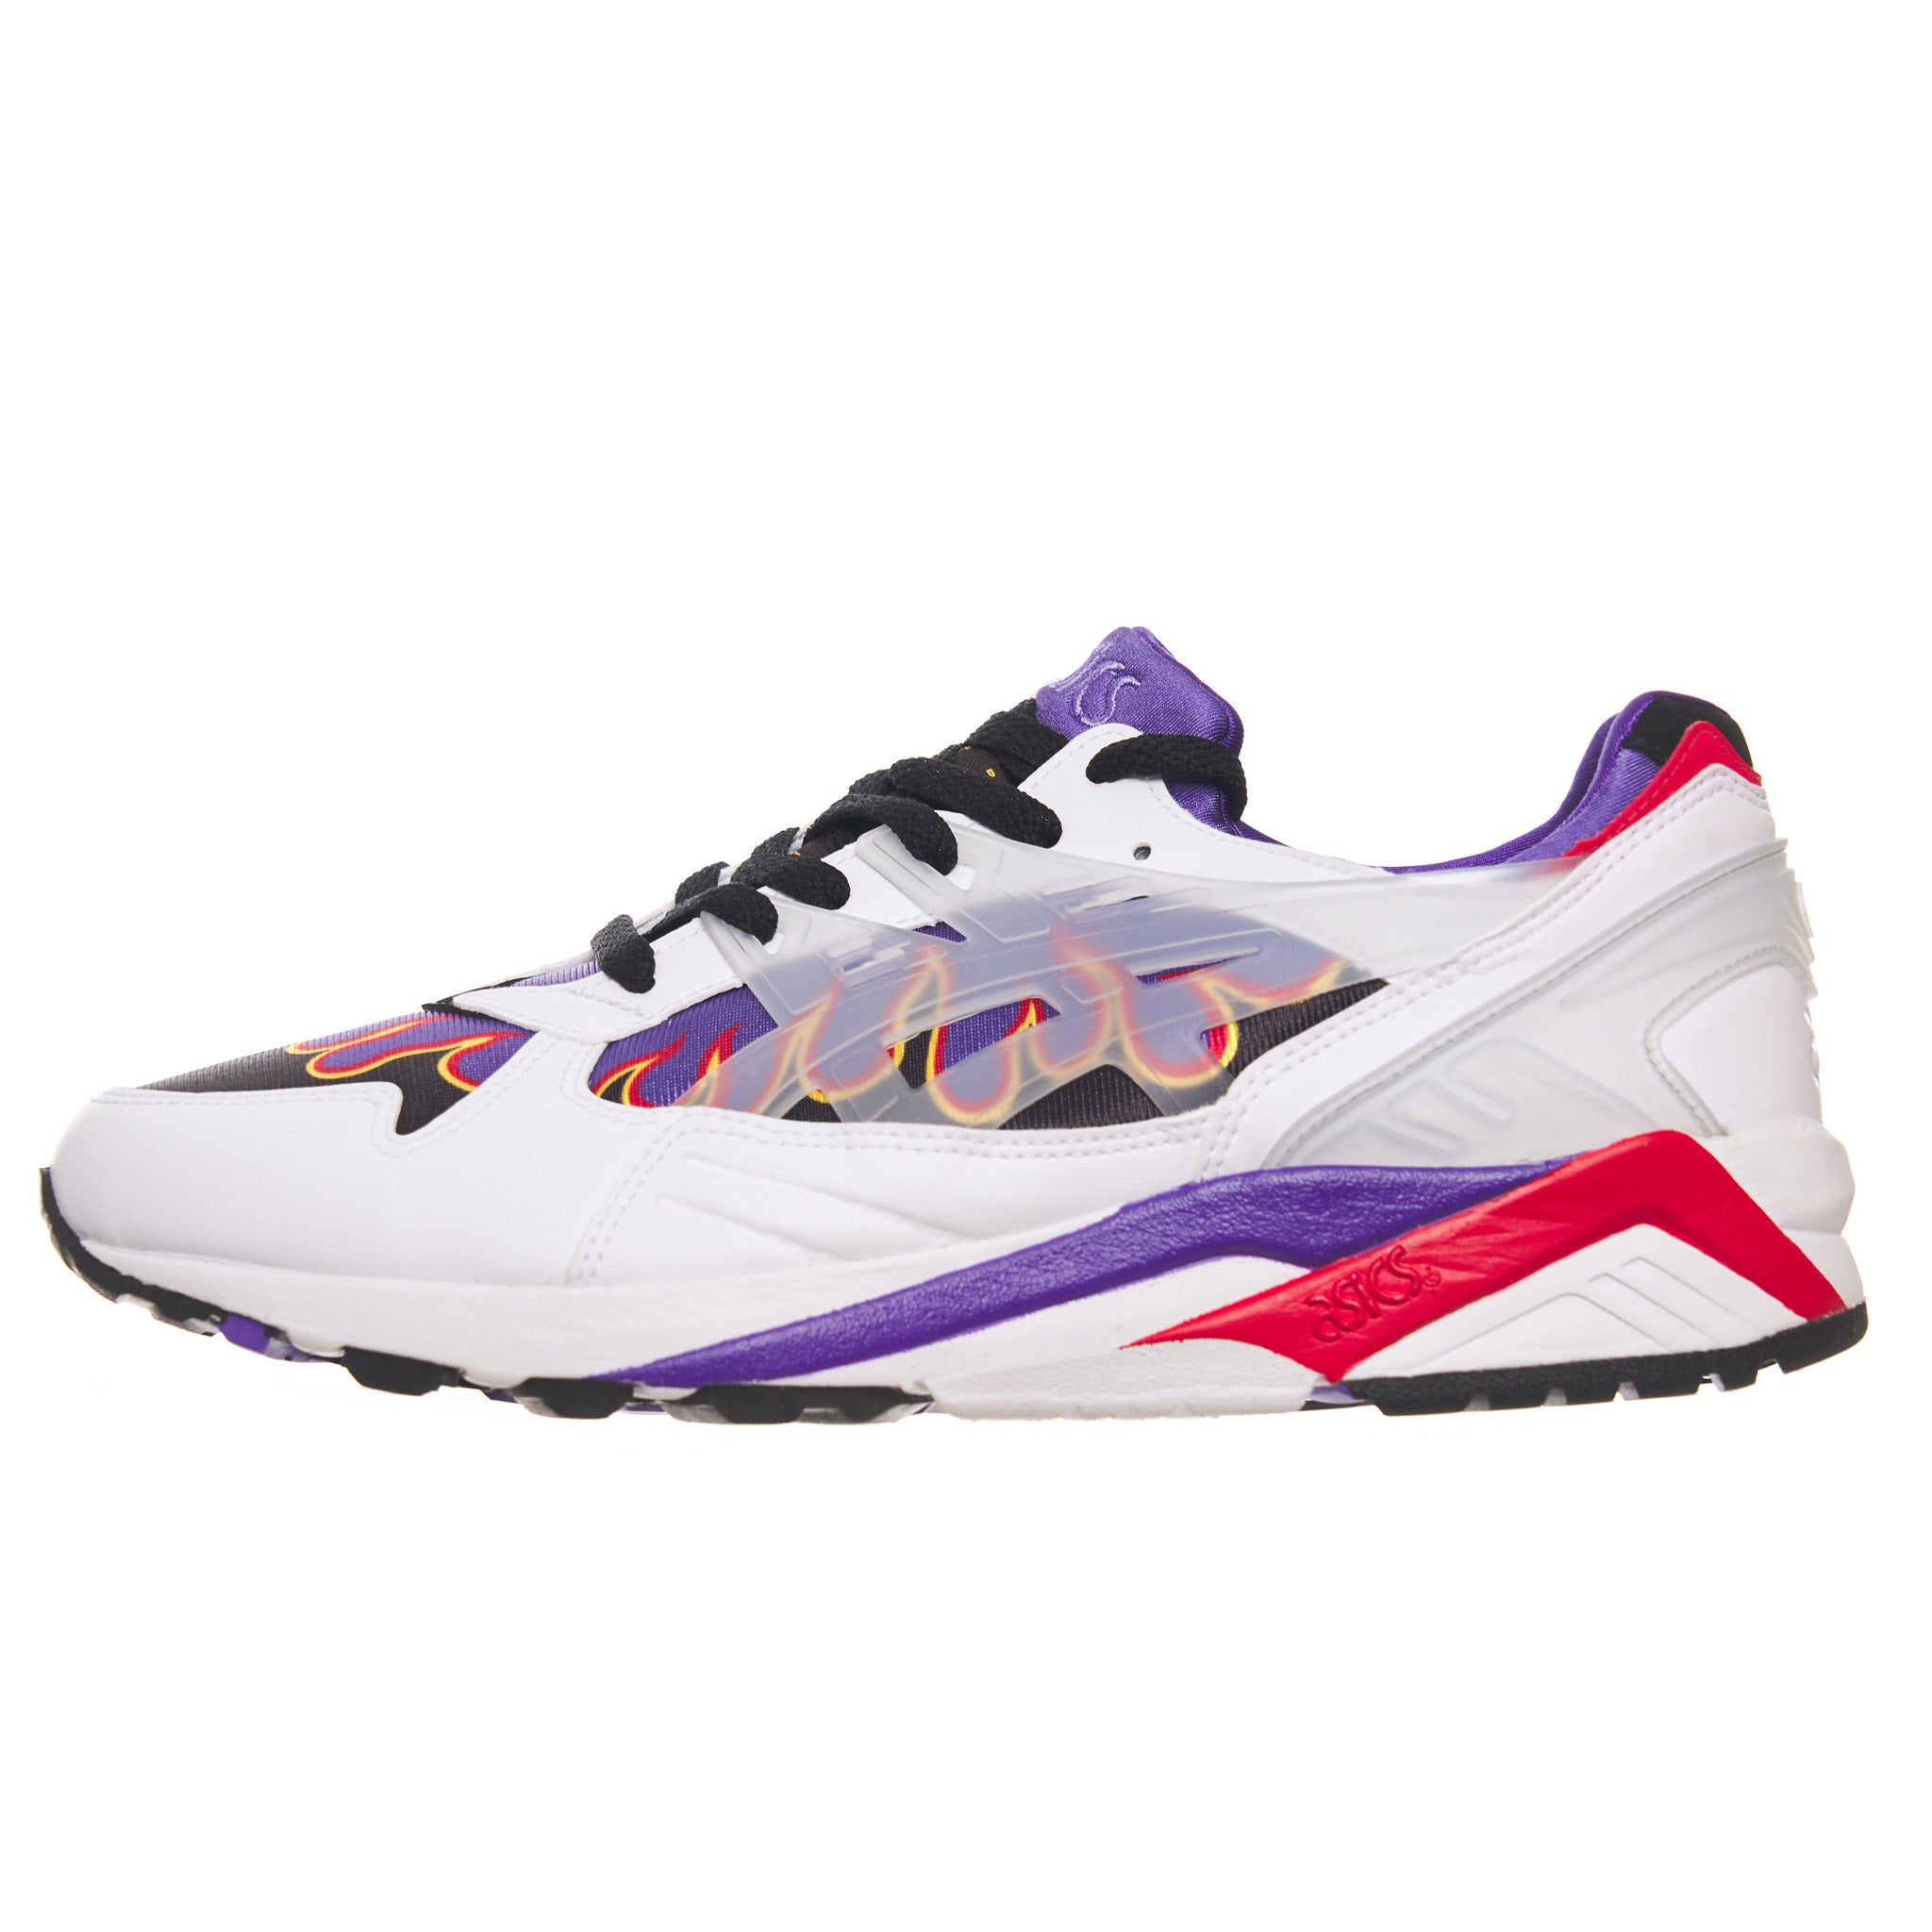 Asics America GEL-KAYANO TRAINER